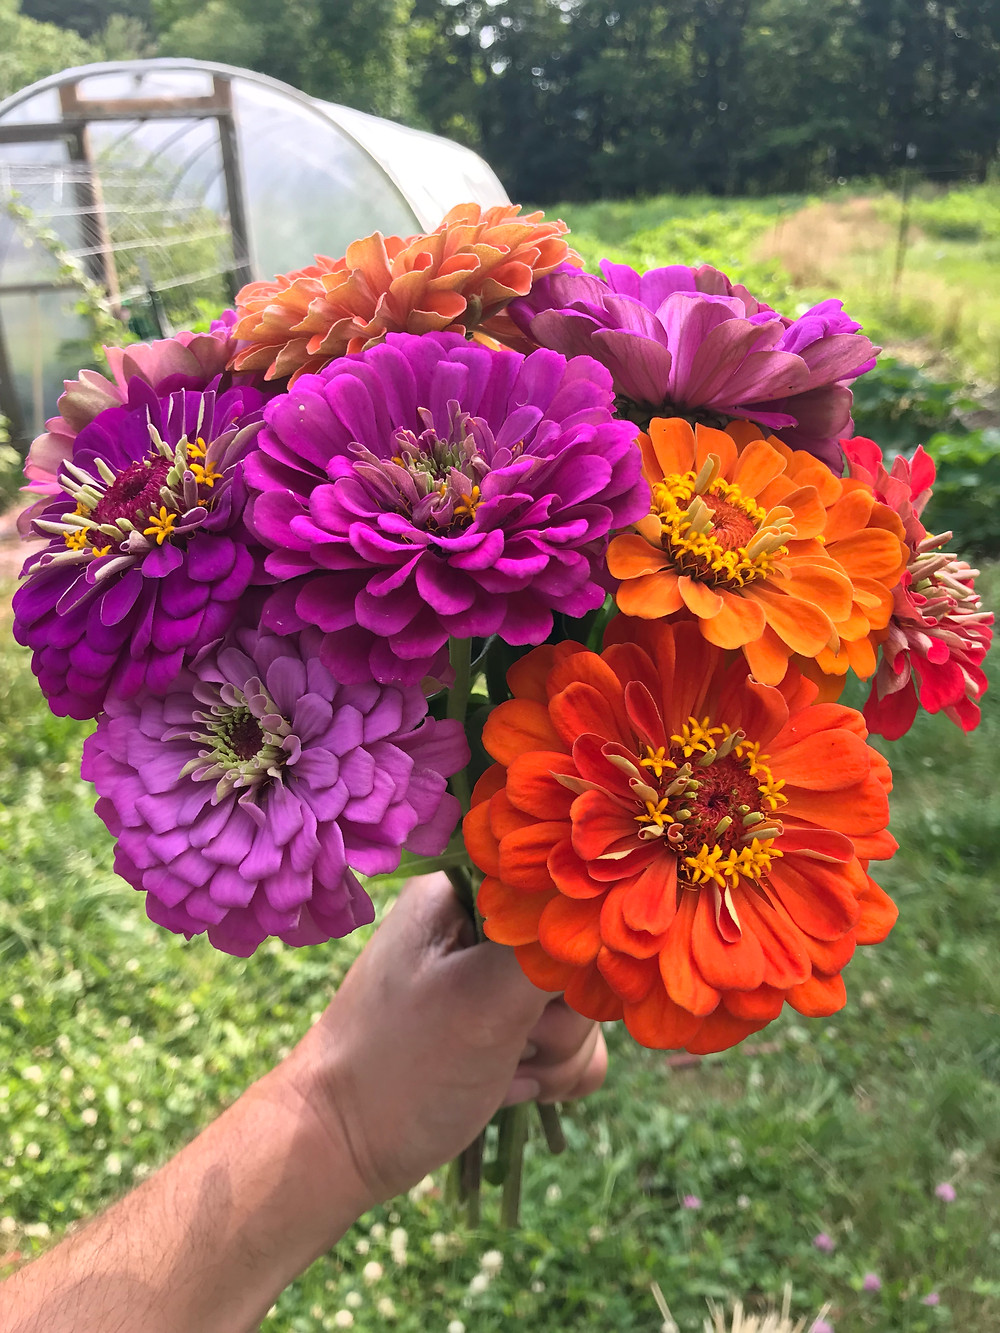 The Zinnias are finally in bloom!